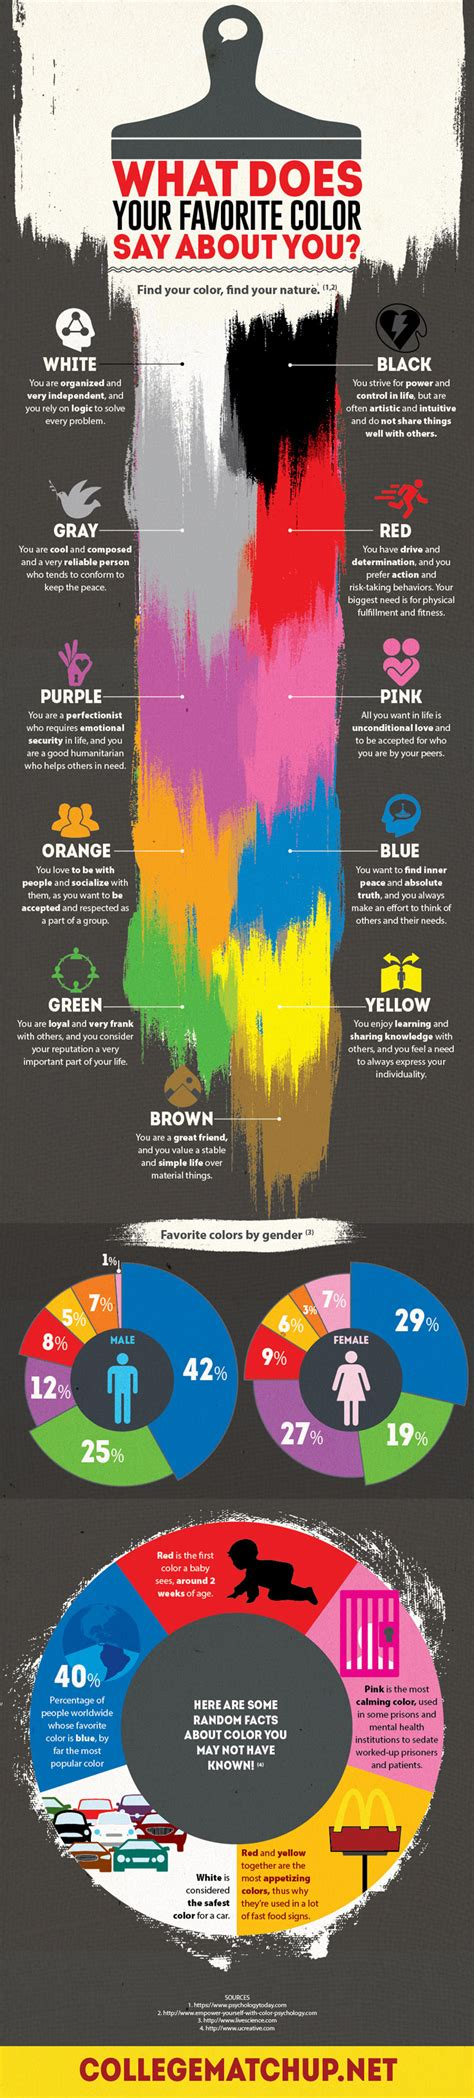 what does color what does your favorite color say about you infographic